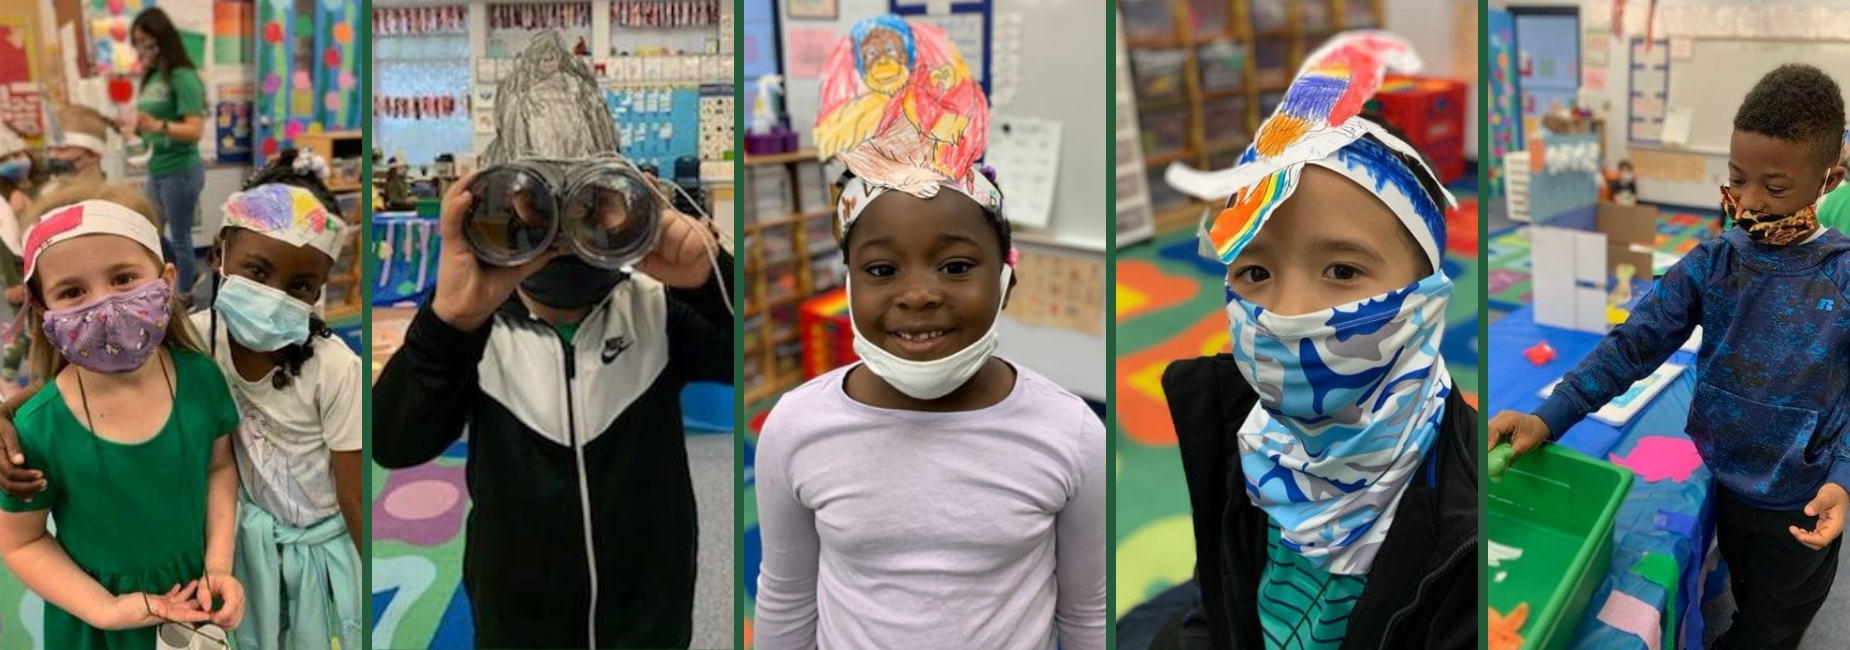 collage of 5 elementary students wearing colorful animal headbands they made